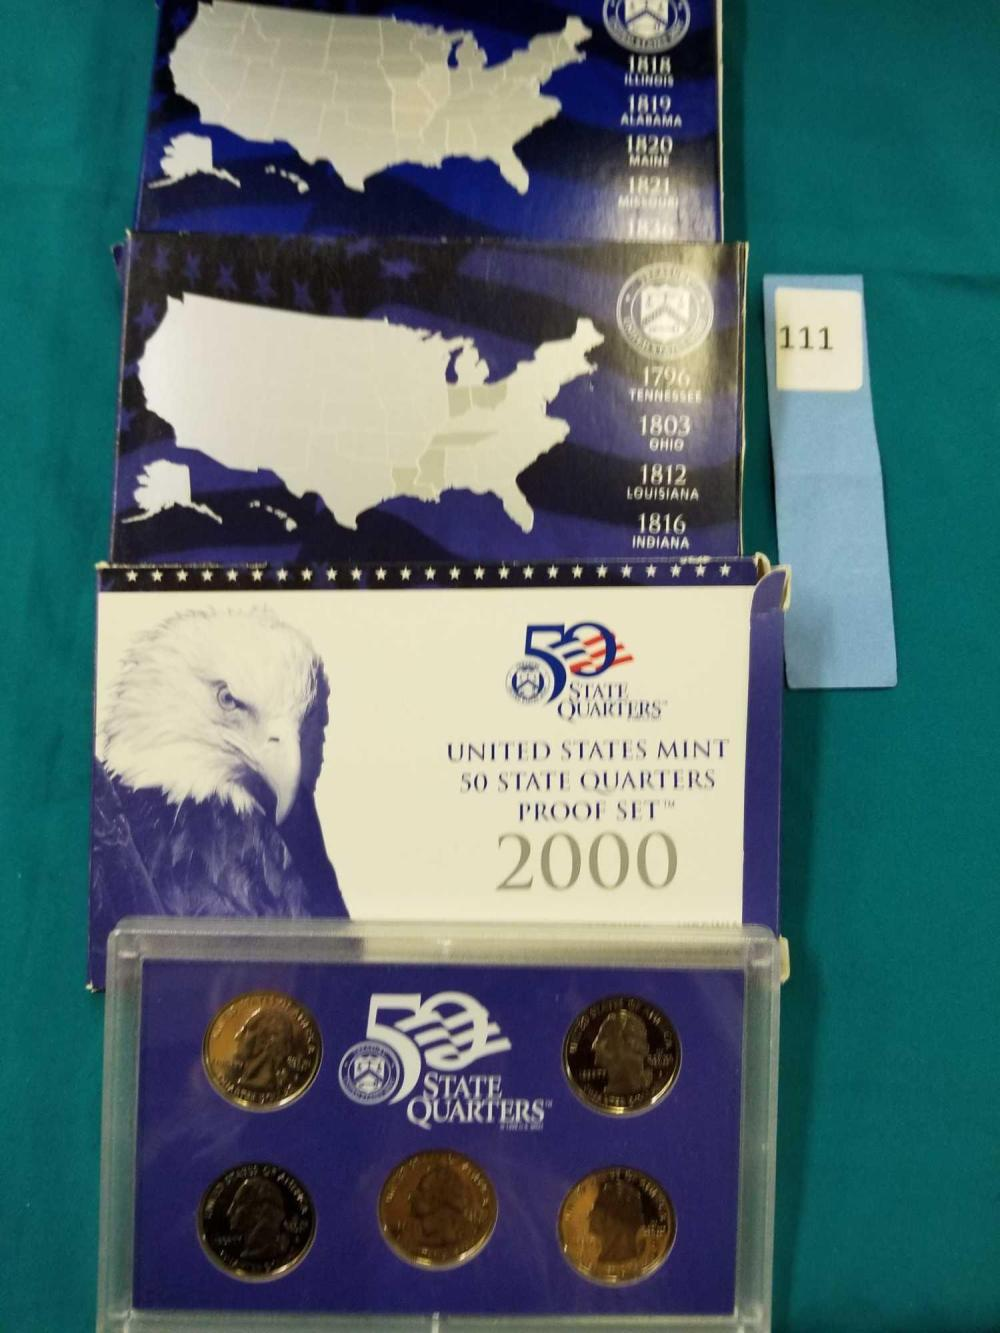 2000, 2002 & 2003 U.S.PROOF STATE QUARTERS COIN SETS - 3 ITEMS